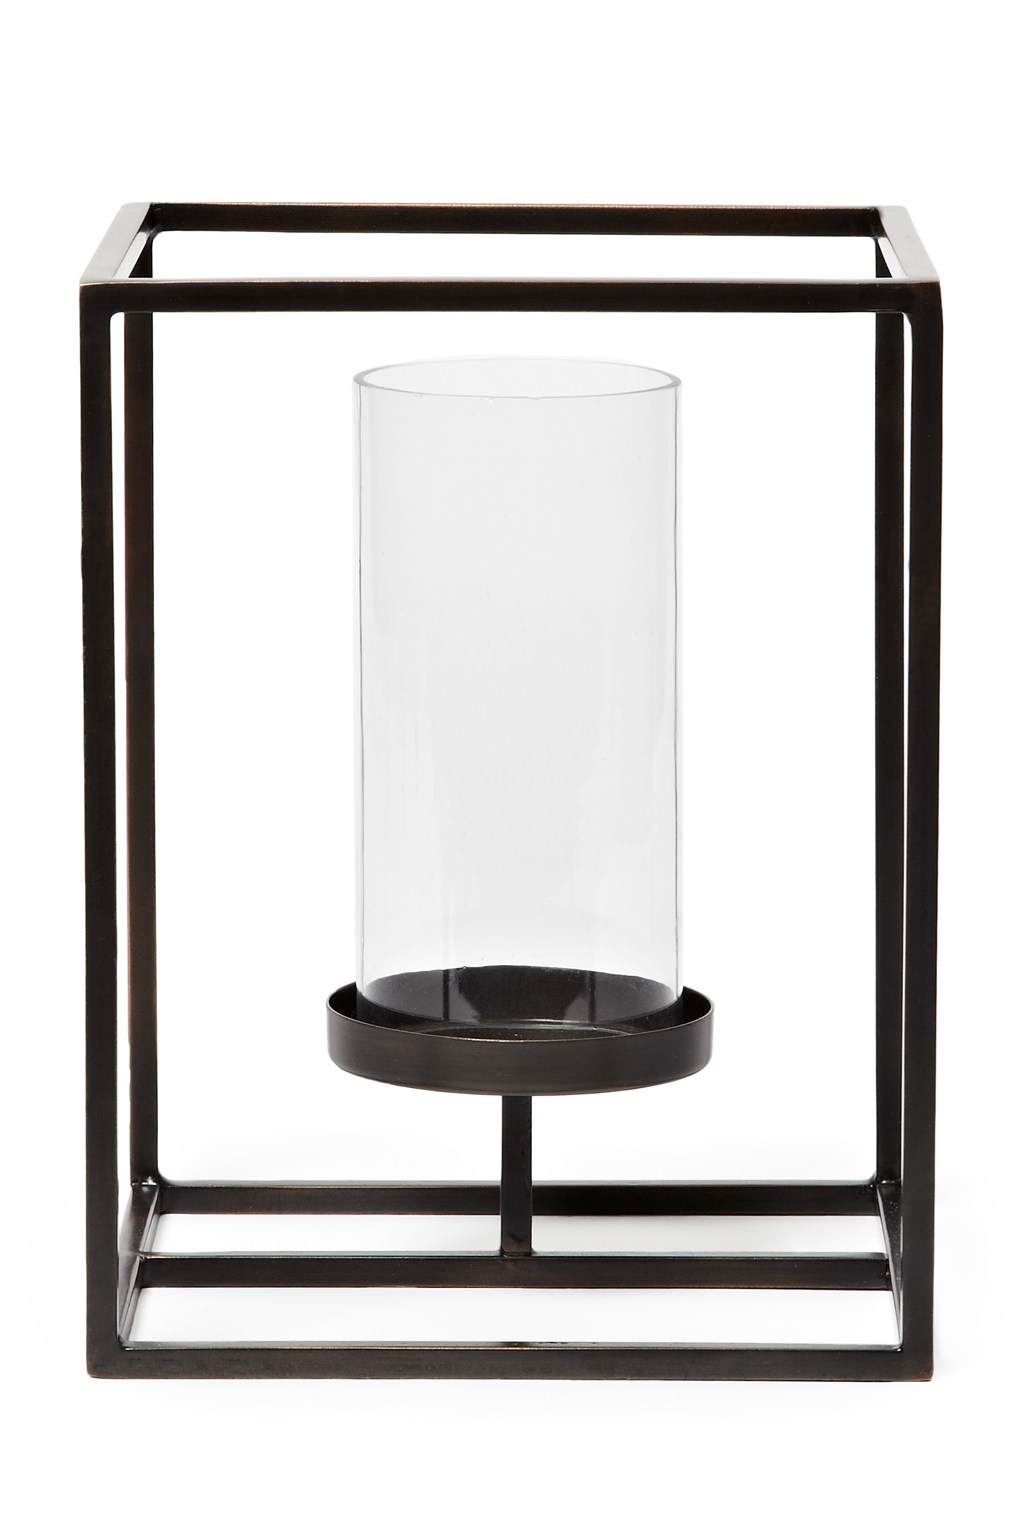 StudioGabrielle-9oftheBest-Home-Accessories-Decor-FrenchConnection-Cube-Hurricane-CandleHolder-studiogabrielle.co.uk